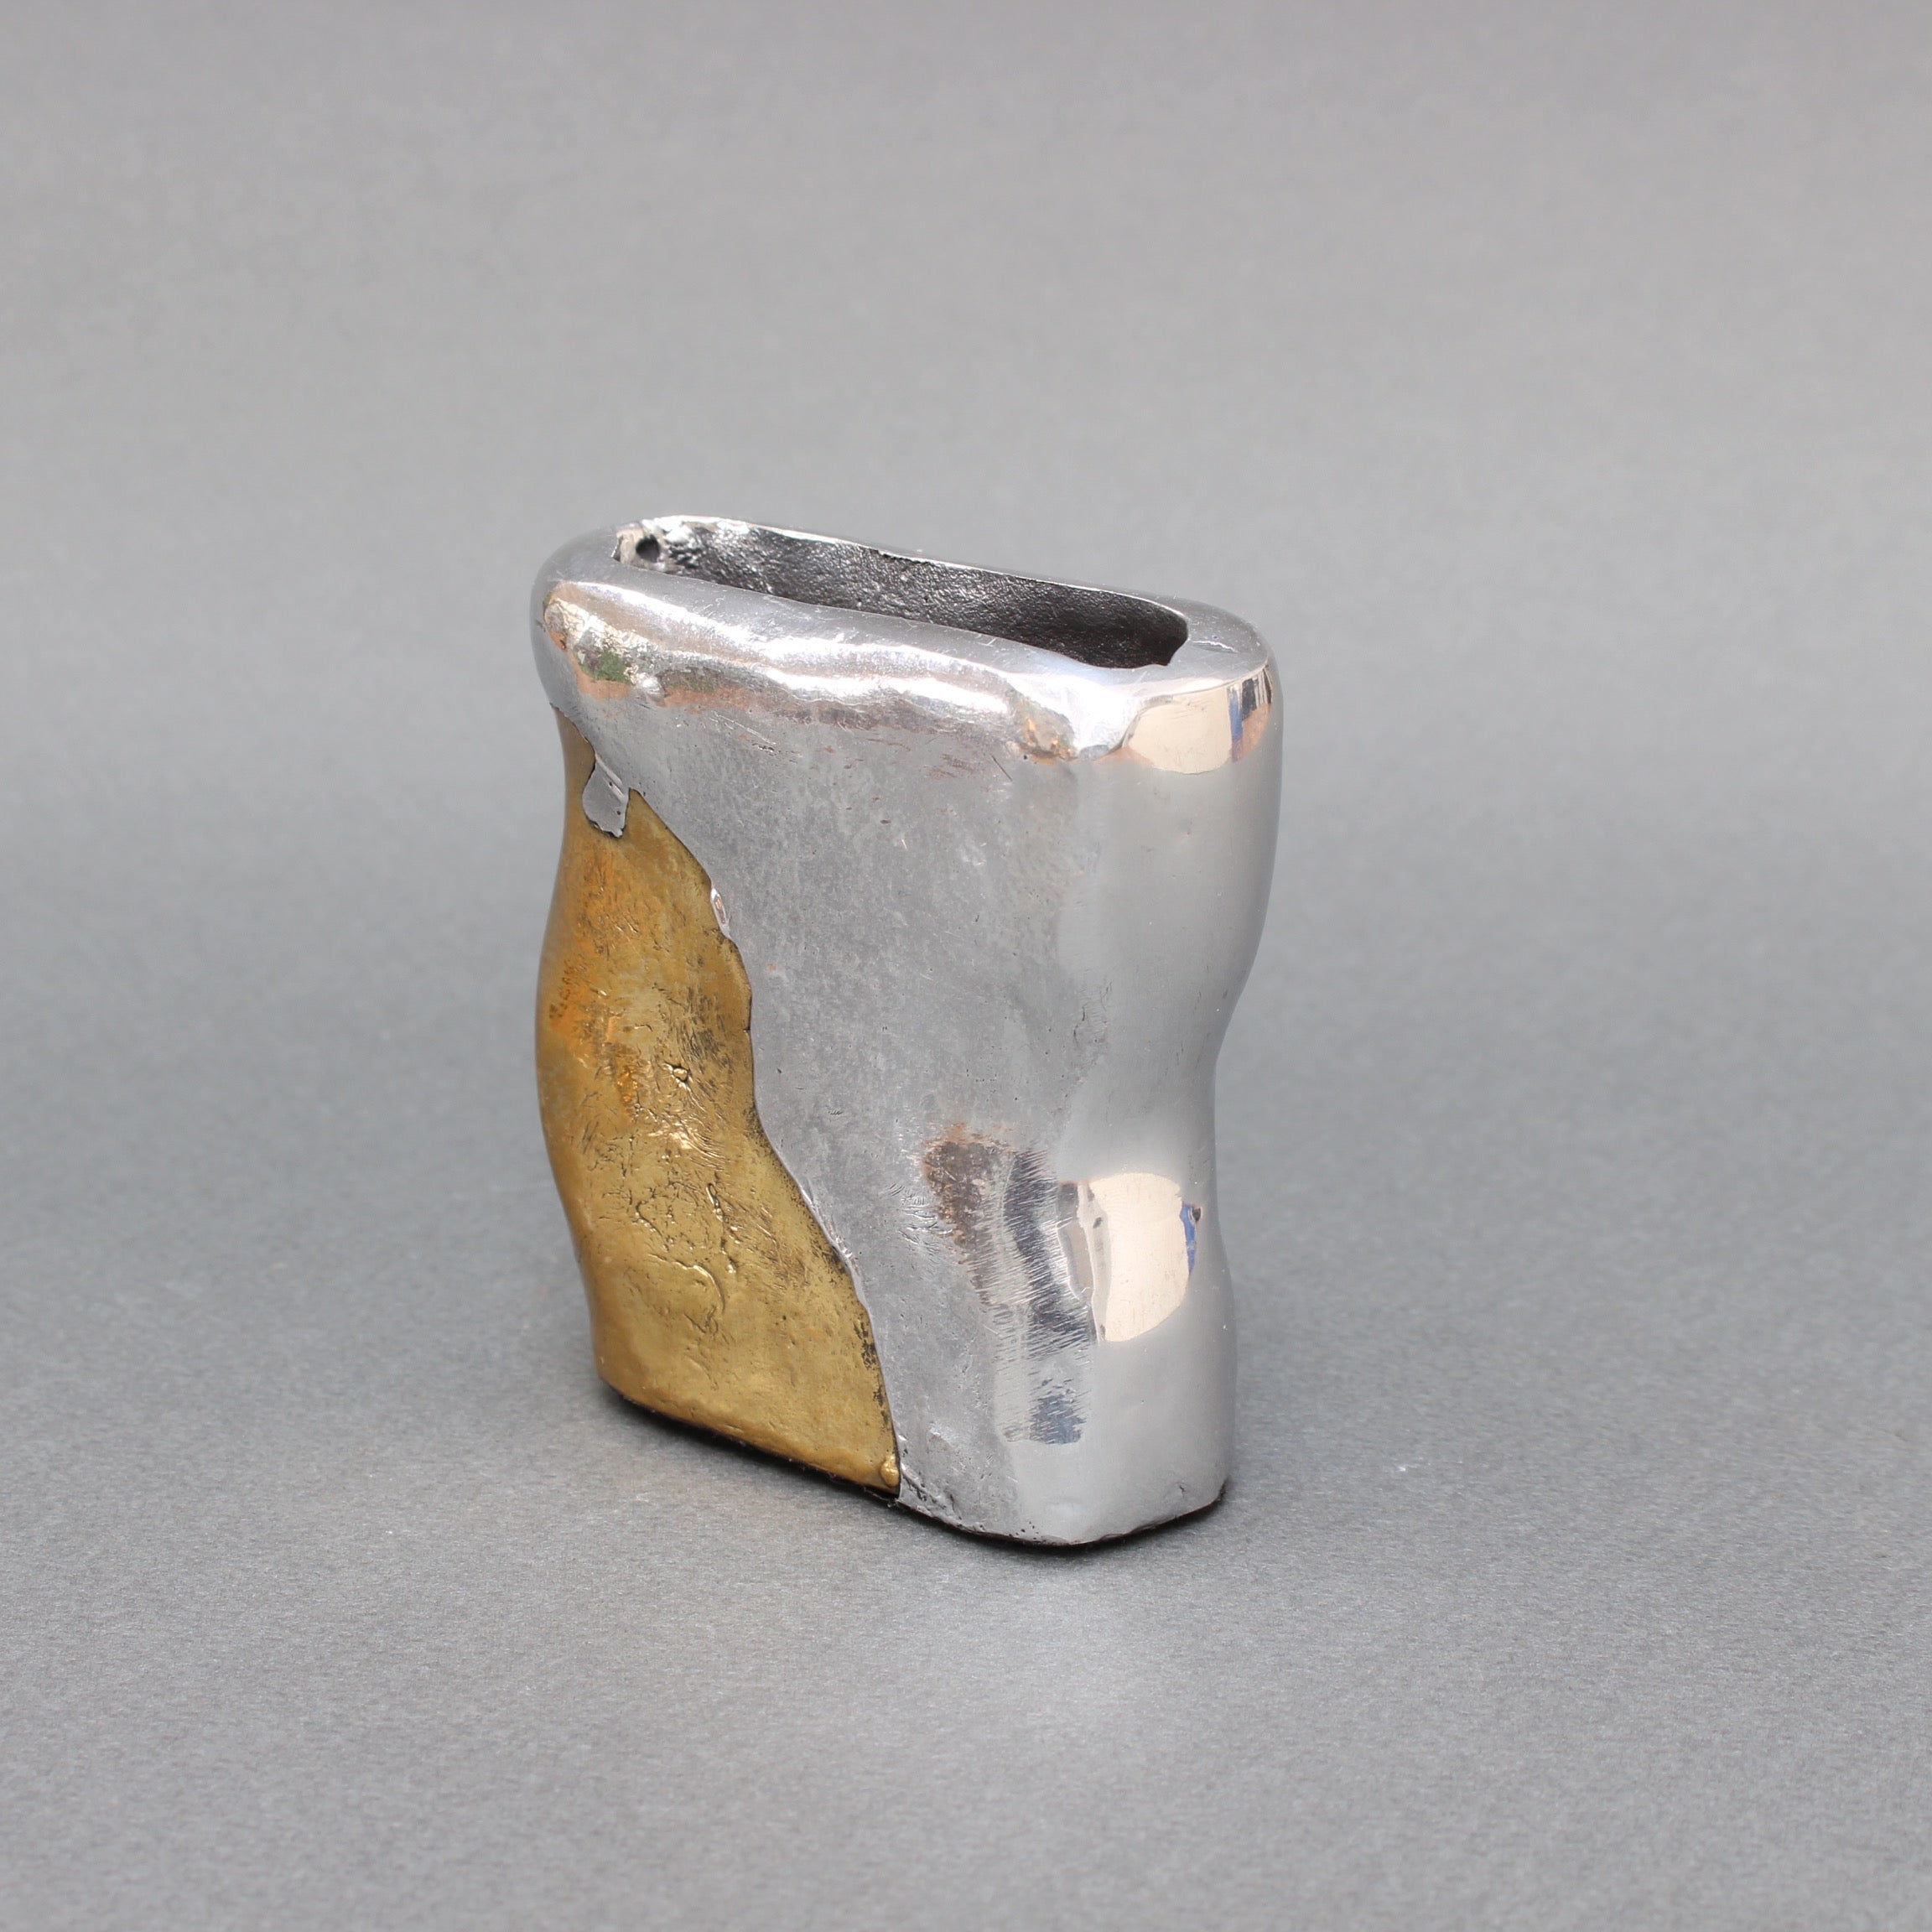 Brutalist Aluminium and Brass Cardholder Attributed to David Marshall (circa 1970s)